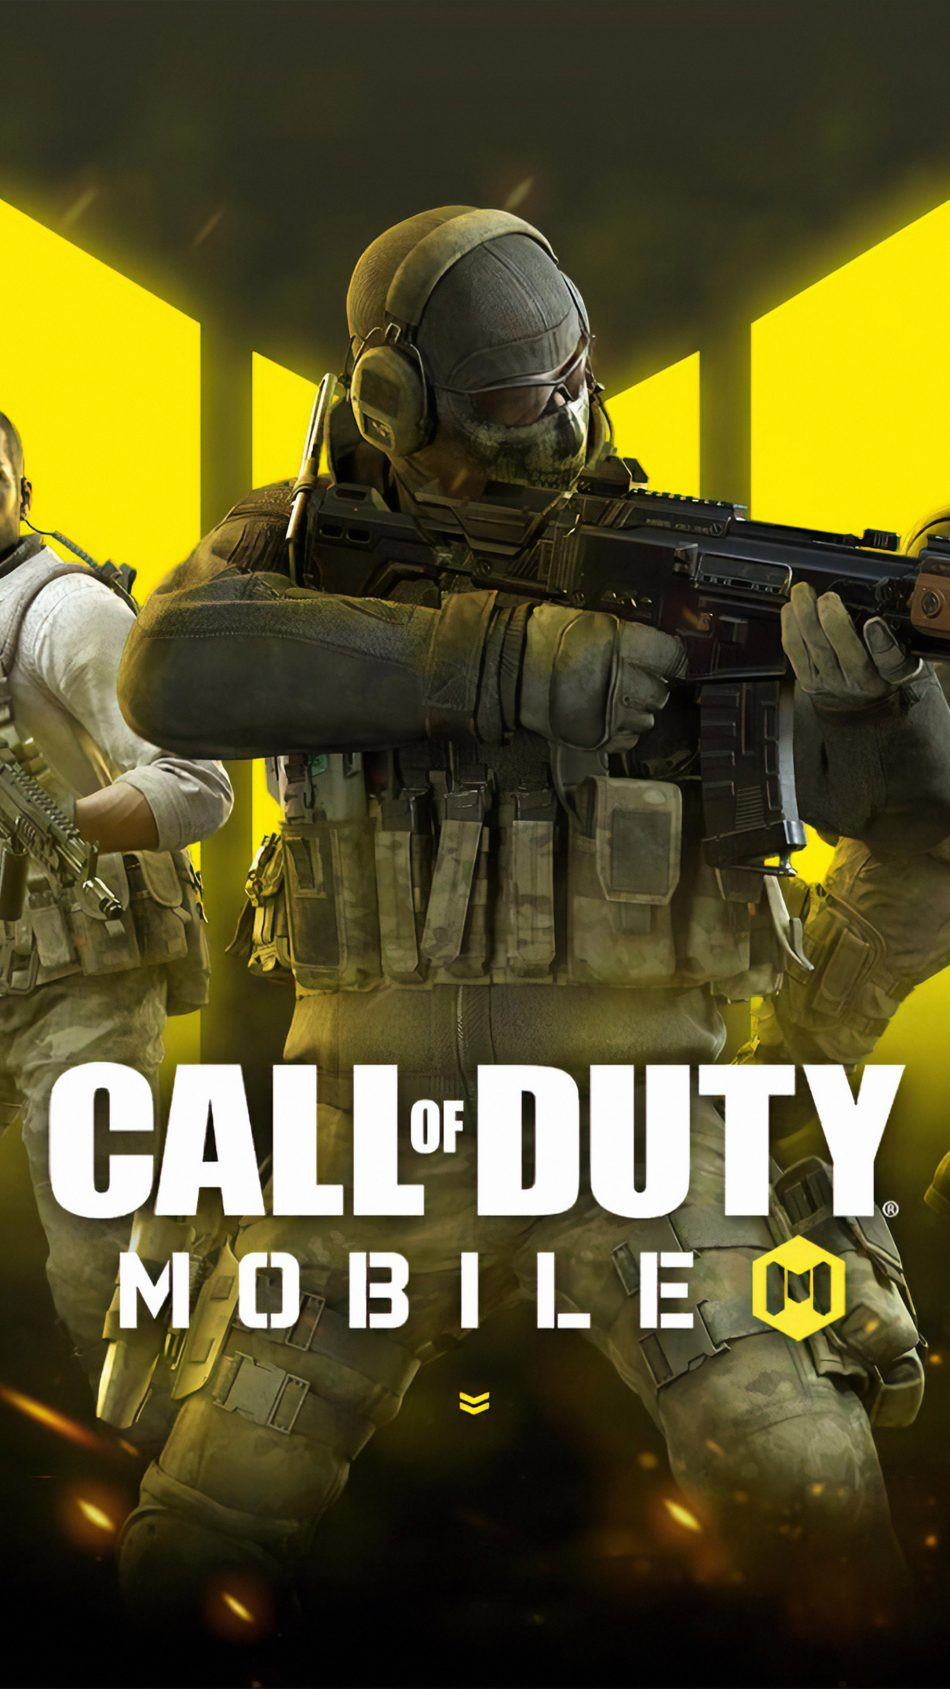 call of duty mobile wallpaper hd